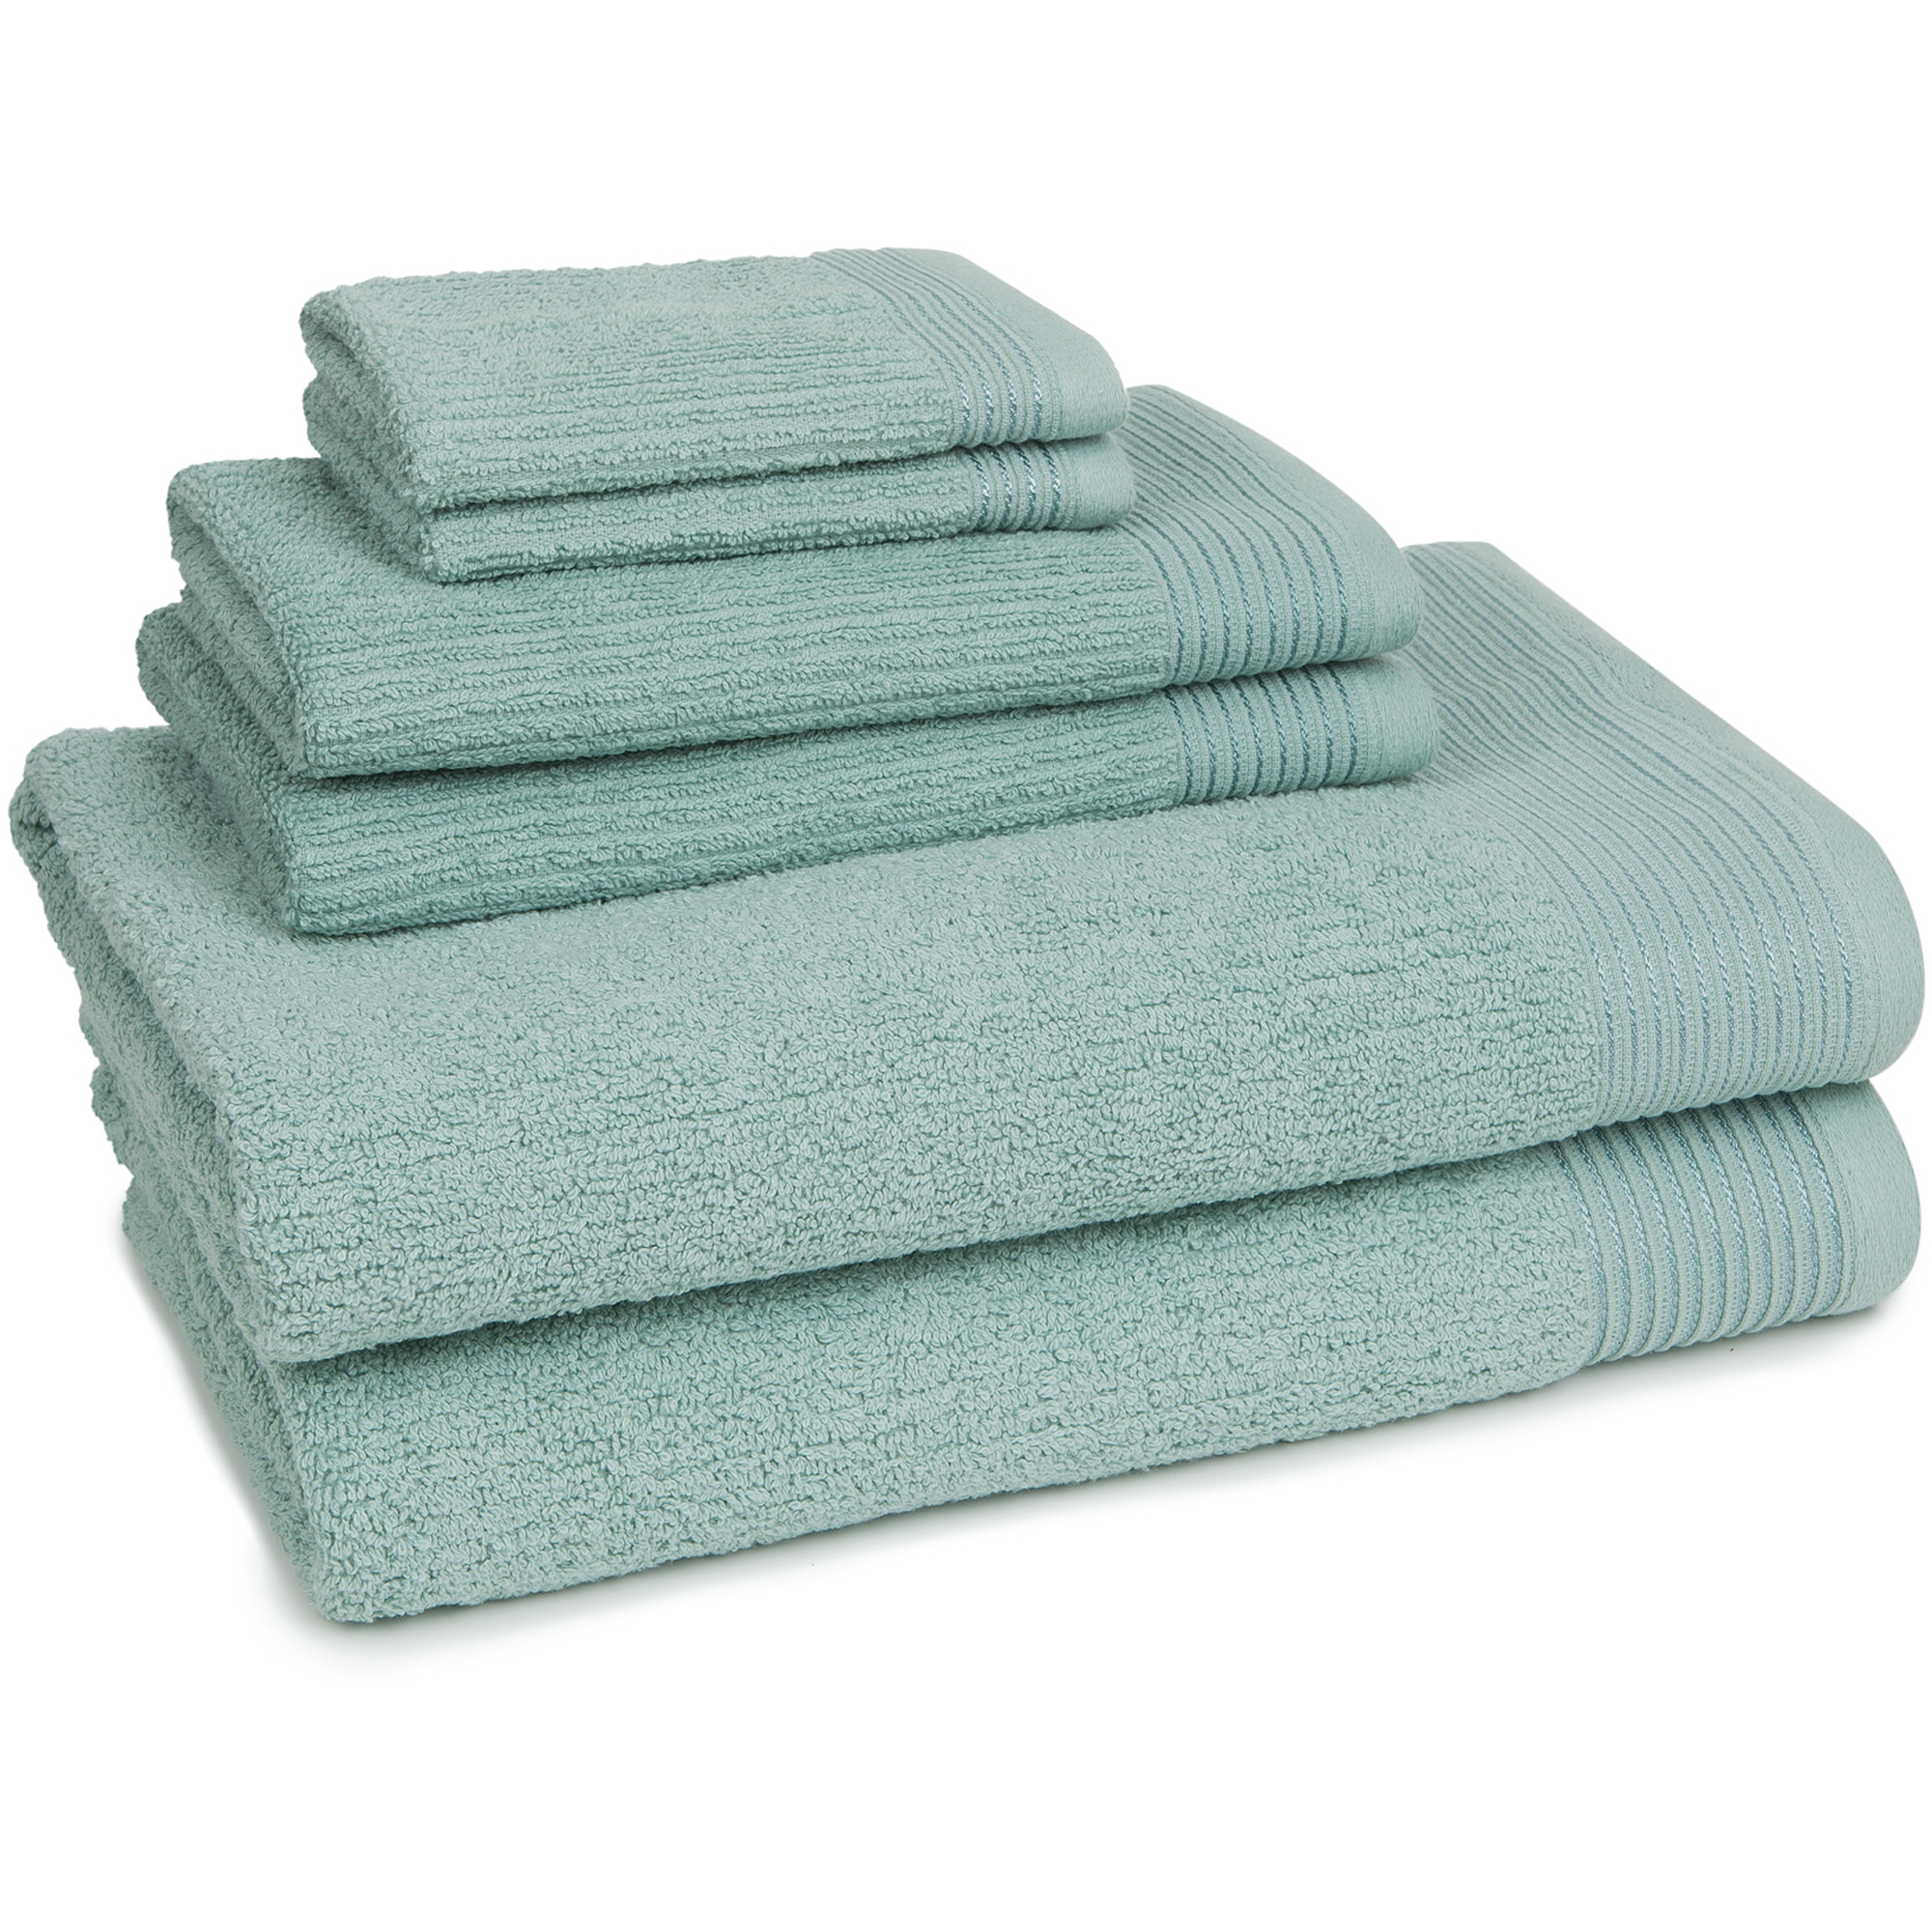 Supreme Spa 6-Piece Bath Towel Set